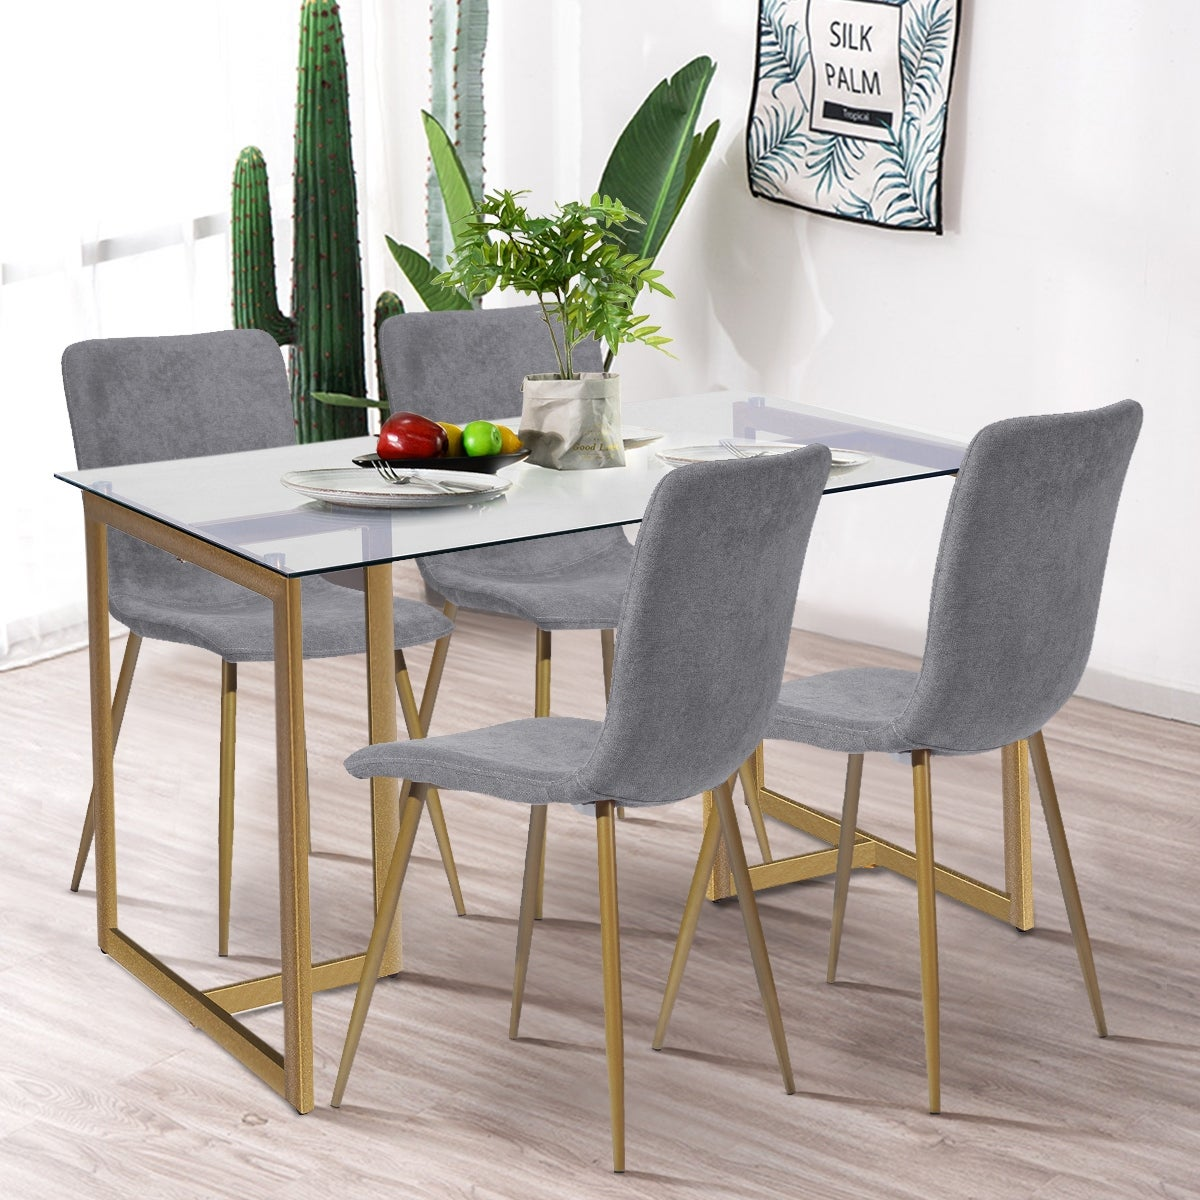 Silver Orchid 5 Piece Dining Table Set Set For 4 On Sale Overstock 28958051